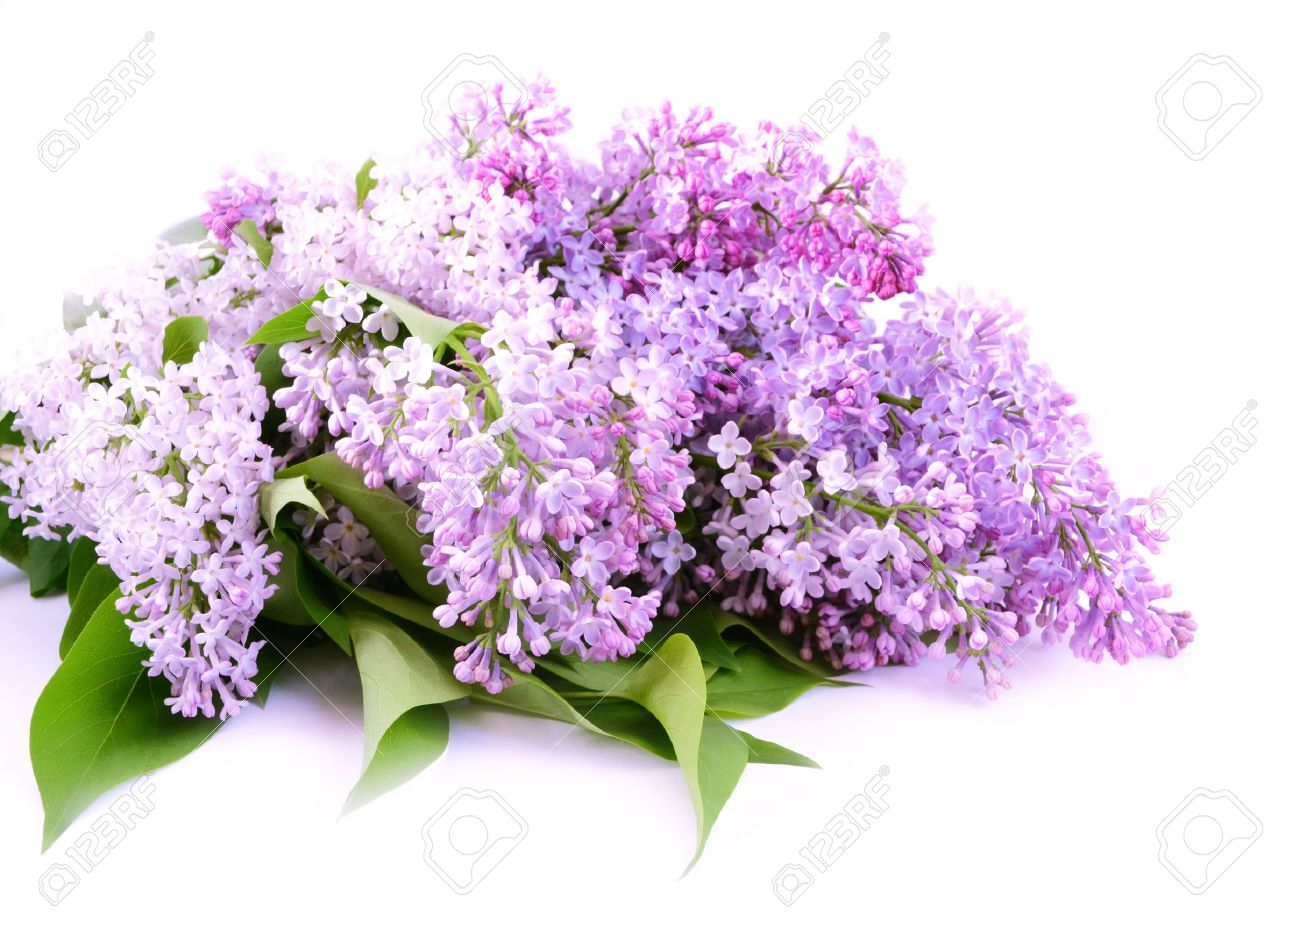 Bouquet lilac blossom on white background - 13571751